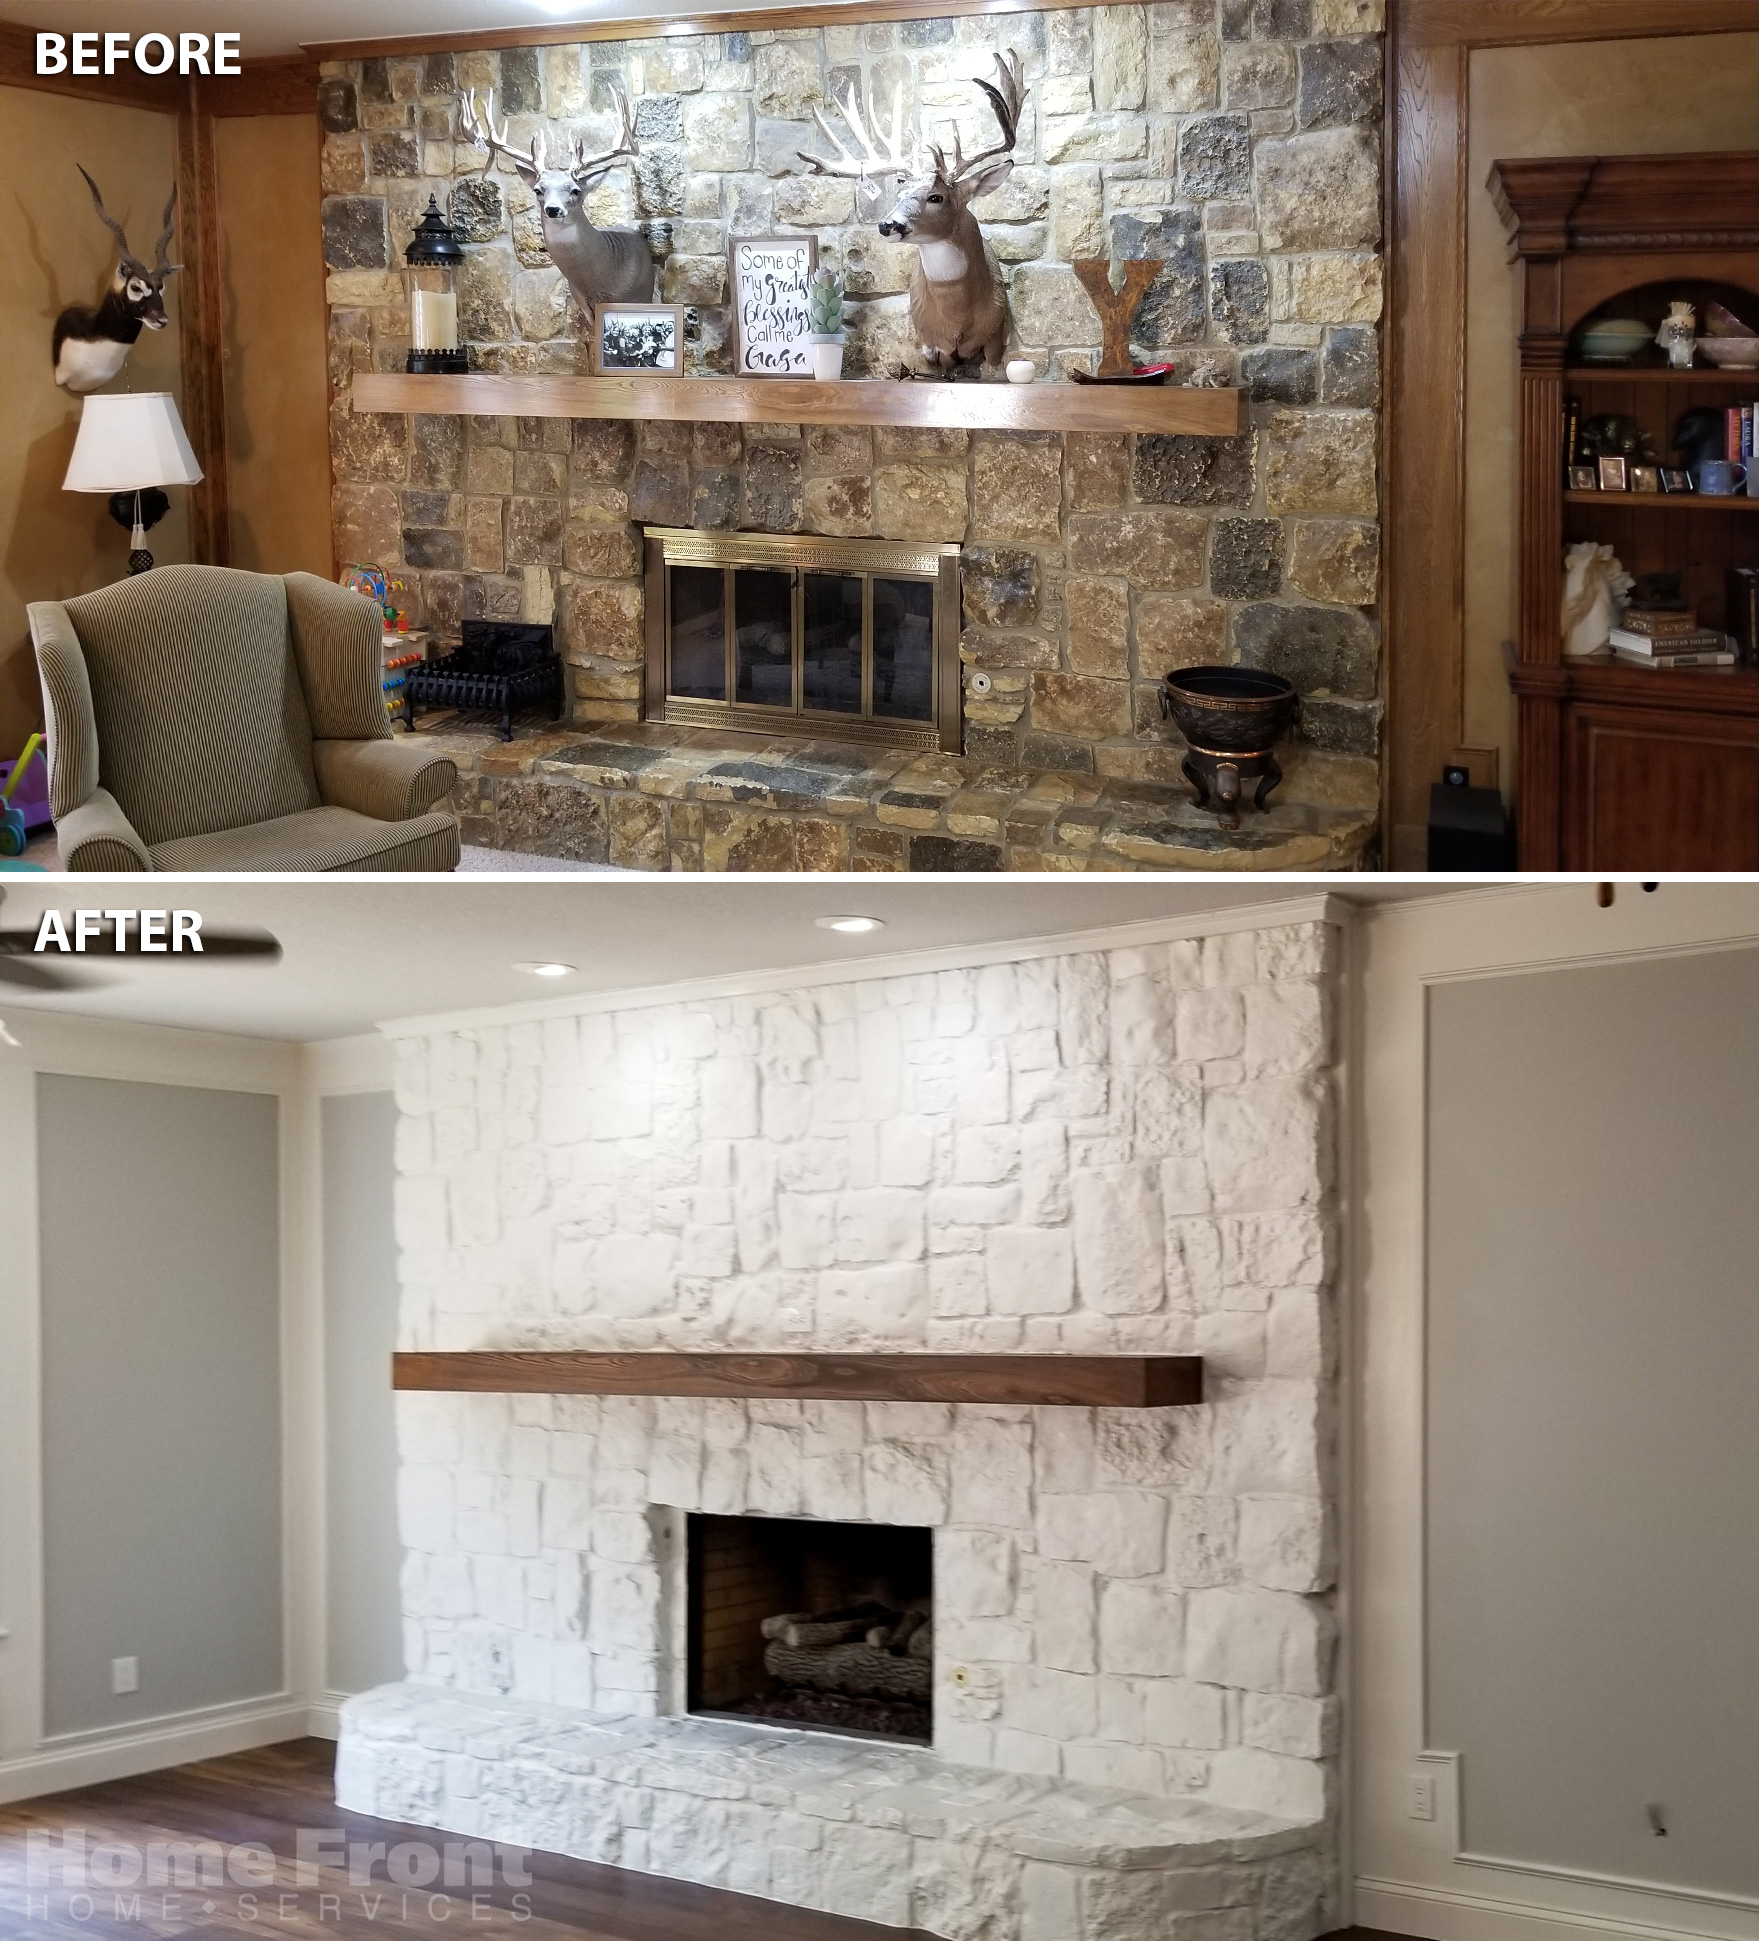 Young,-Cathy-before-after-fireplace